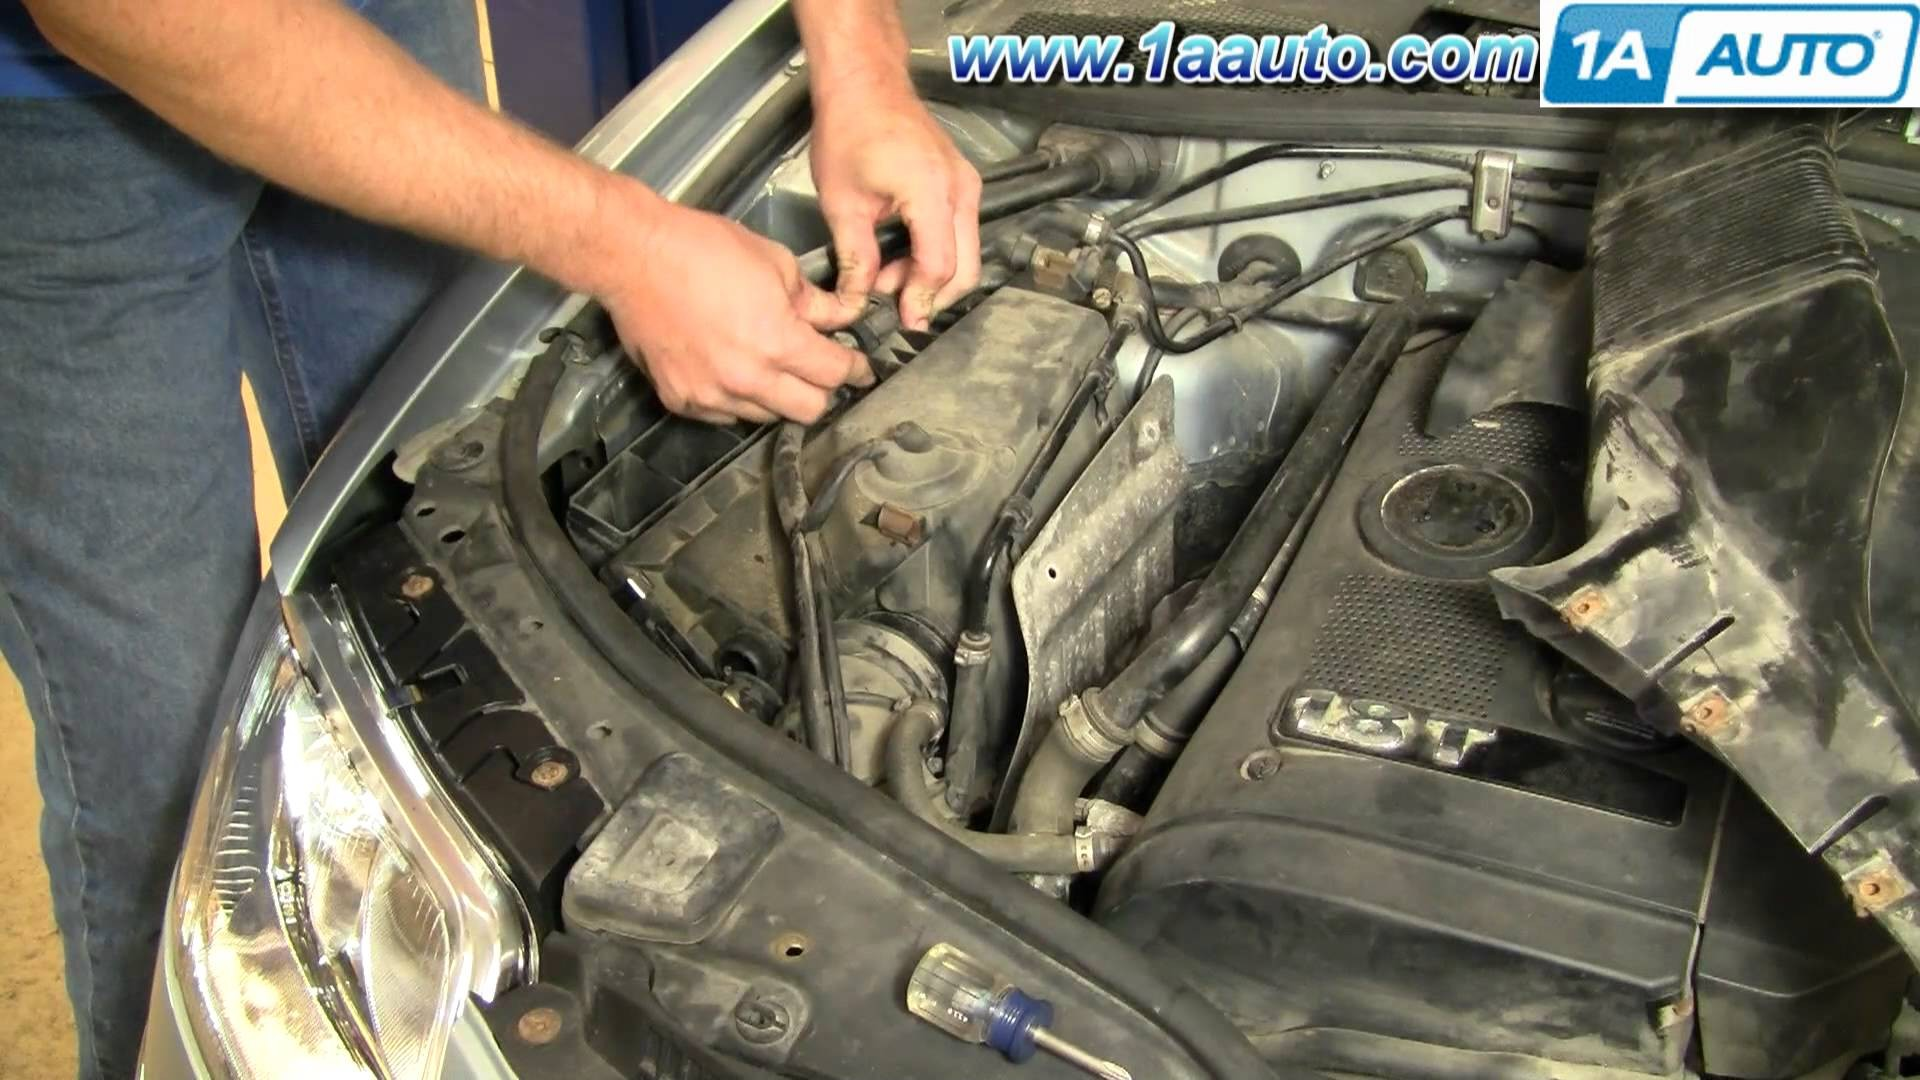 2001 Vw Passat Engine Diagram Wiring In Addition 57 Chevy How To Install Replace Air Filter Volkswagen 02 05